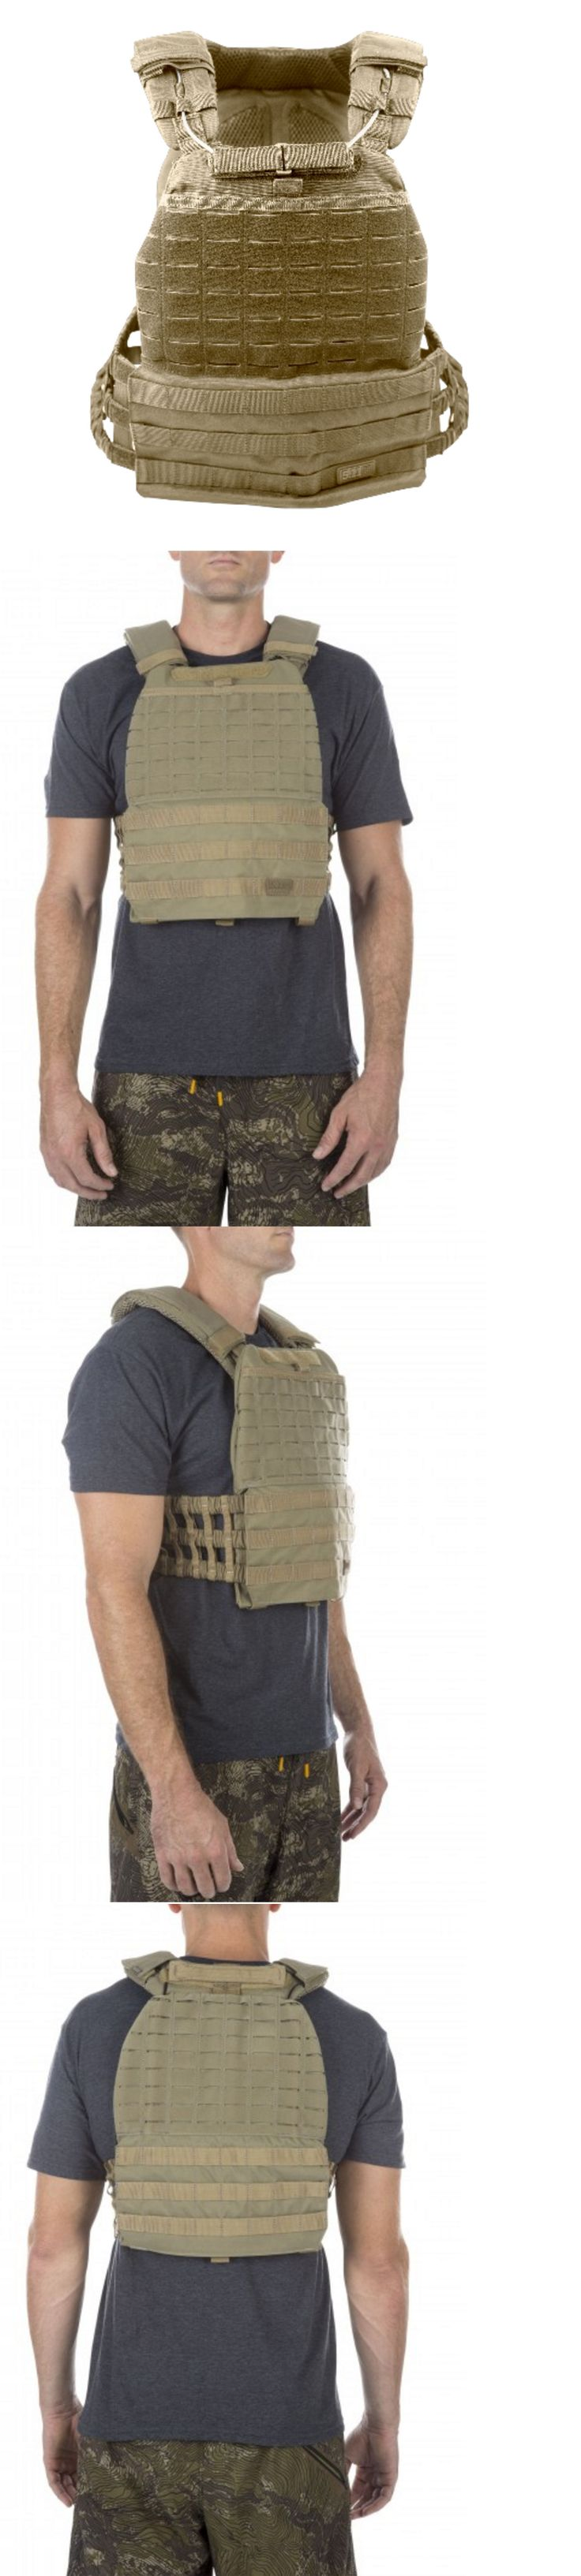 Chest Rigs and Tactical Vests 177891: 5.11 Tactical Tactec™ Plate Carrier Sandstone Crossfit Airsoft Swat Police Vest -> BUY IT NOW ONLY: $180.49 on eBay!